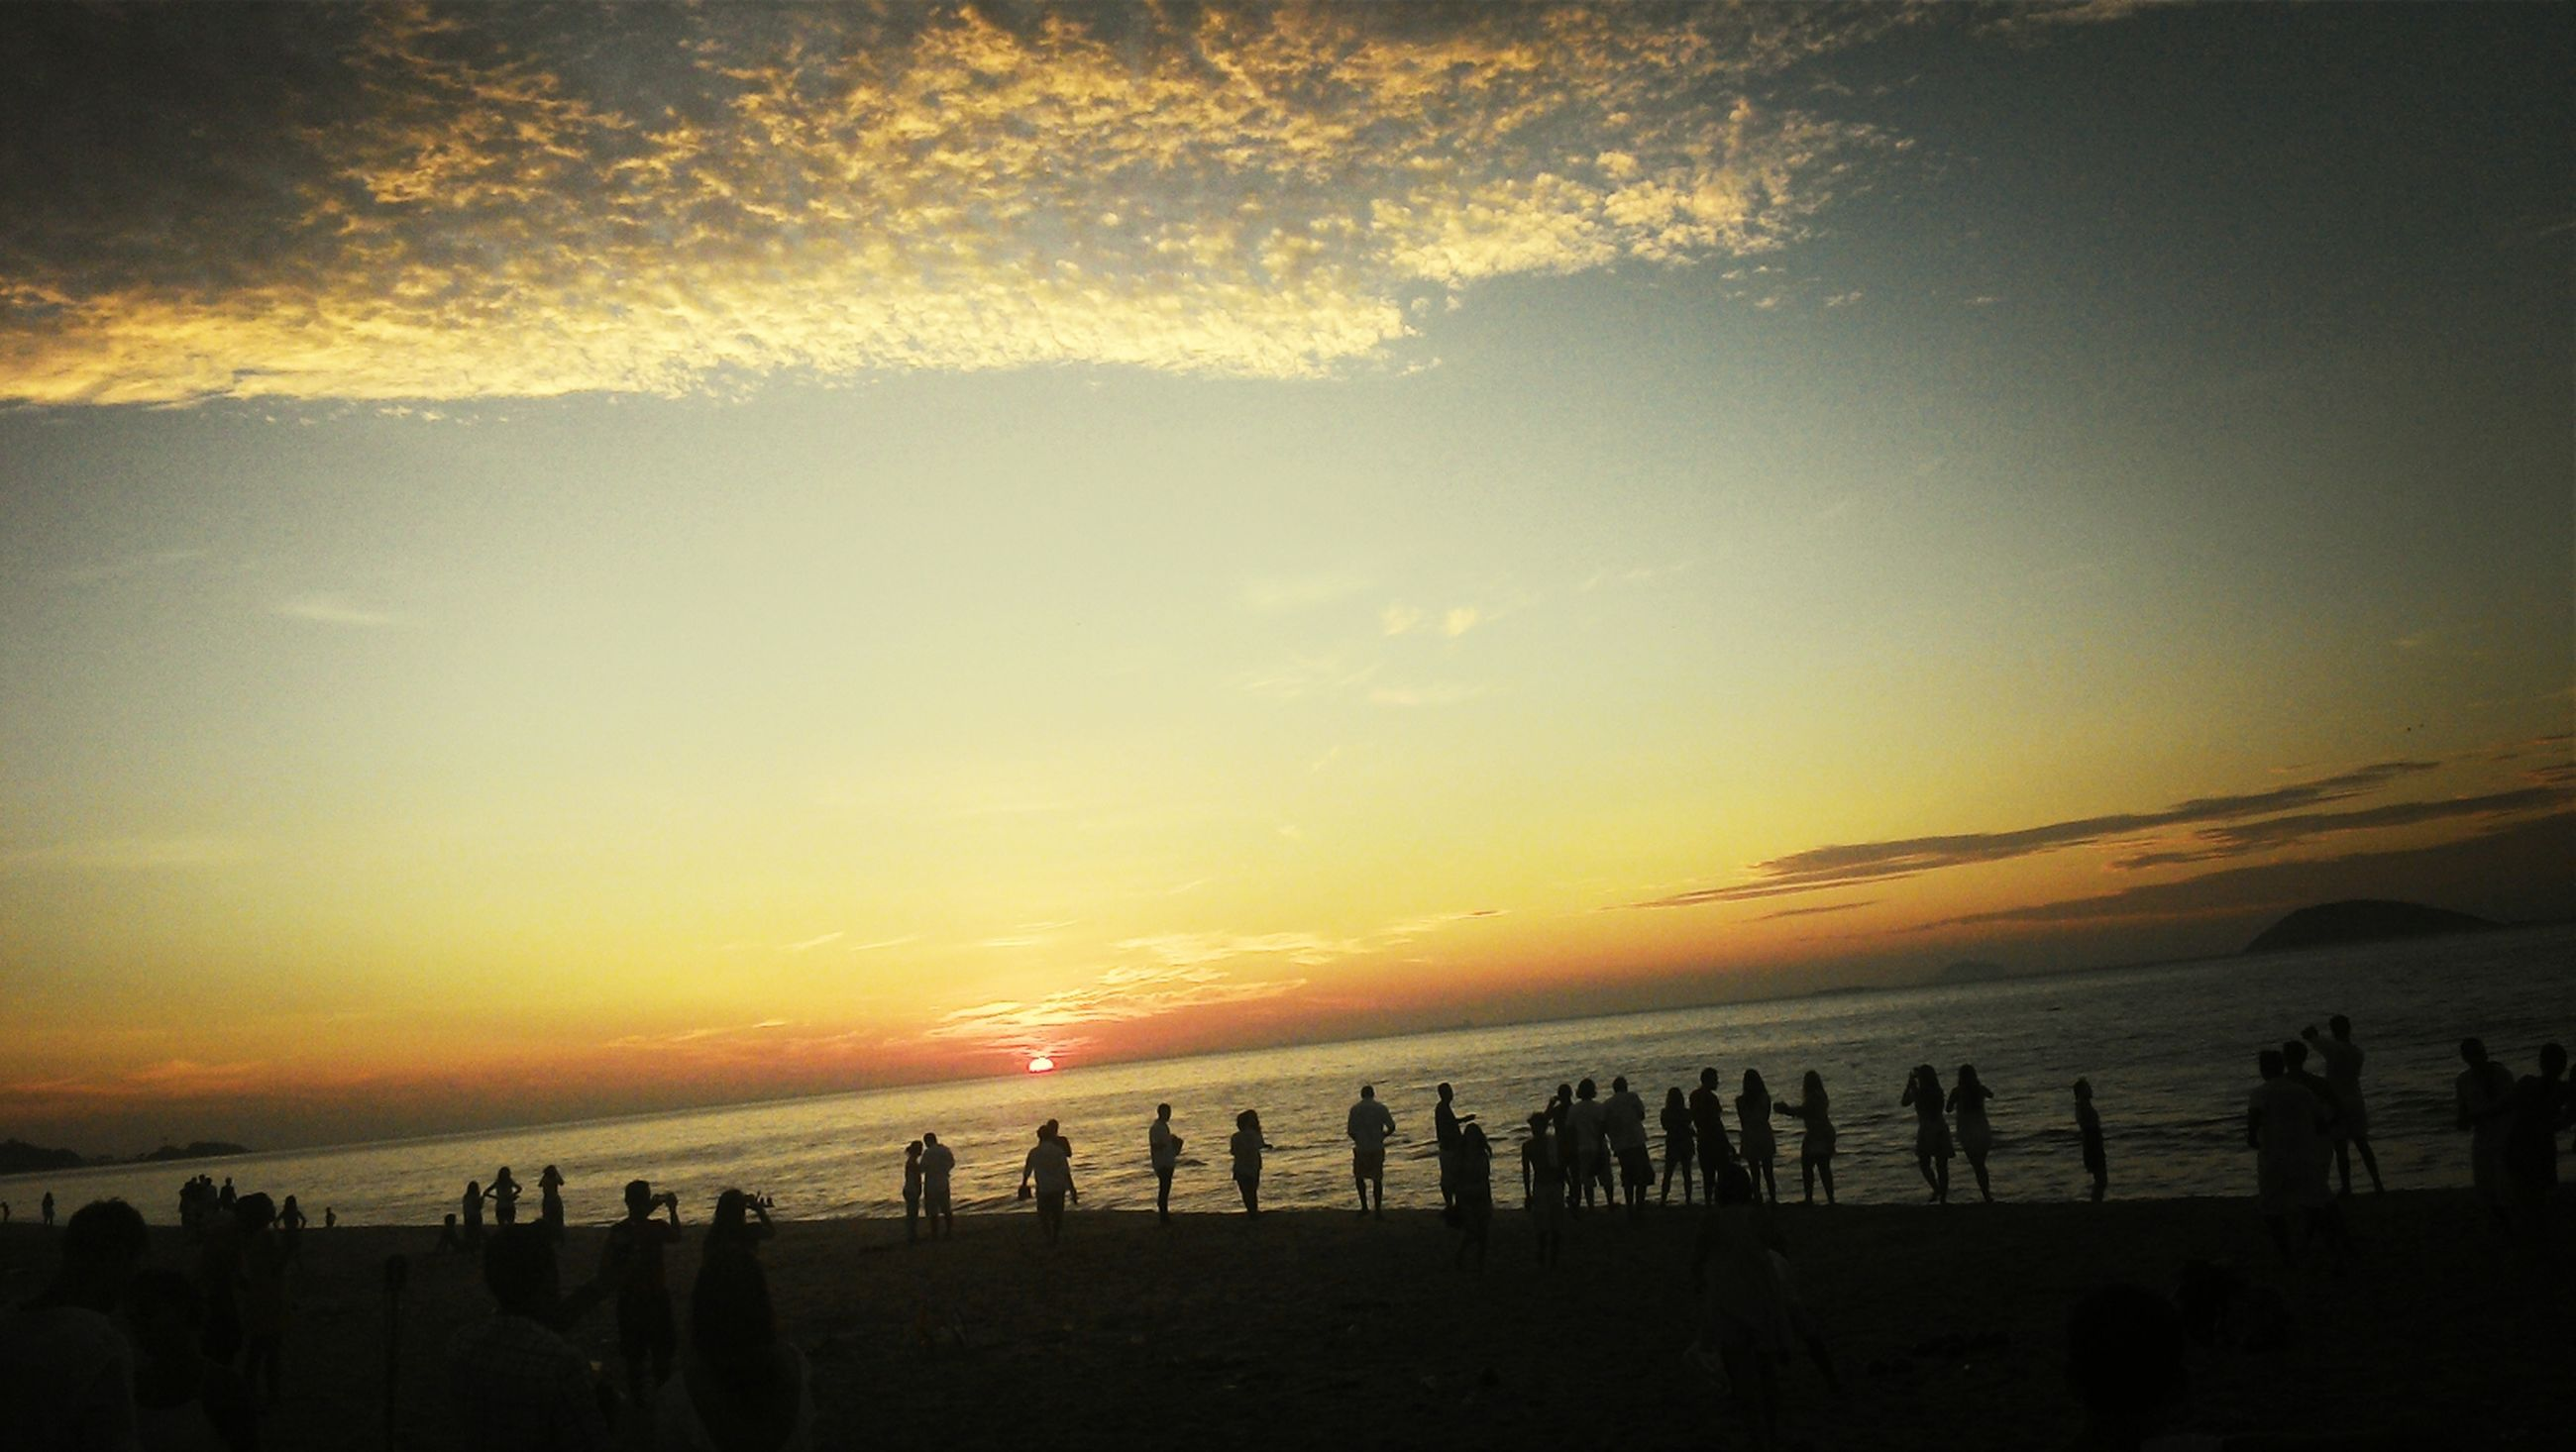 sea, sunset, beach, large group of people, horizon over water, scenics, water, sky, beauty in nature, tranquil scene, silhouette, tranquility, vacations, shore, orange color, nature, idyllic, tourist, tourism